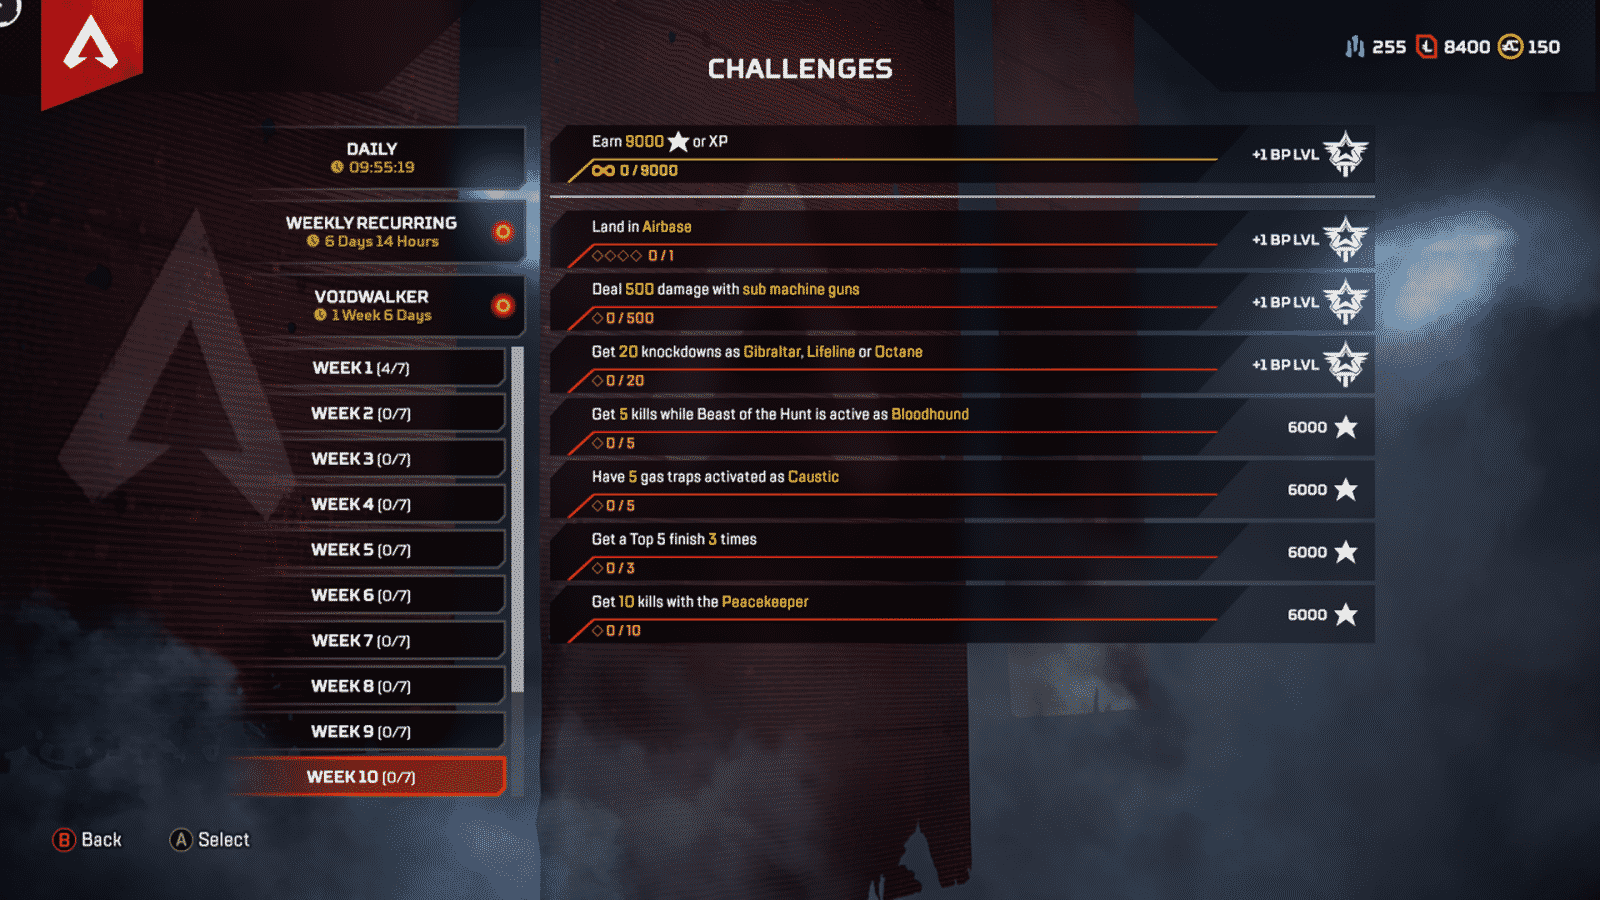 Week 10 challenges for Apex Legends season 2